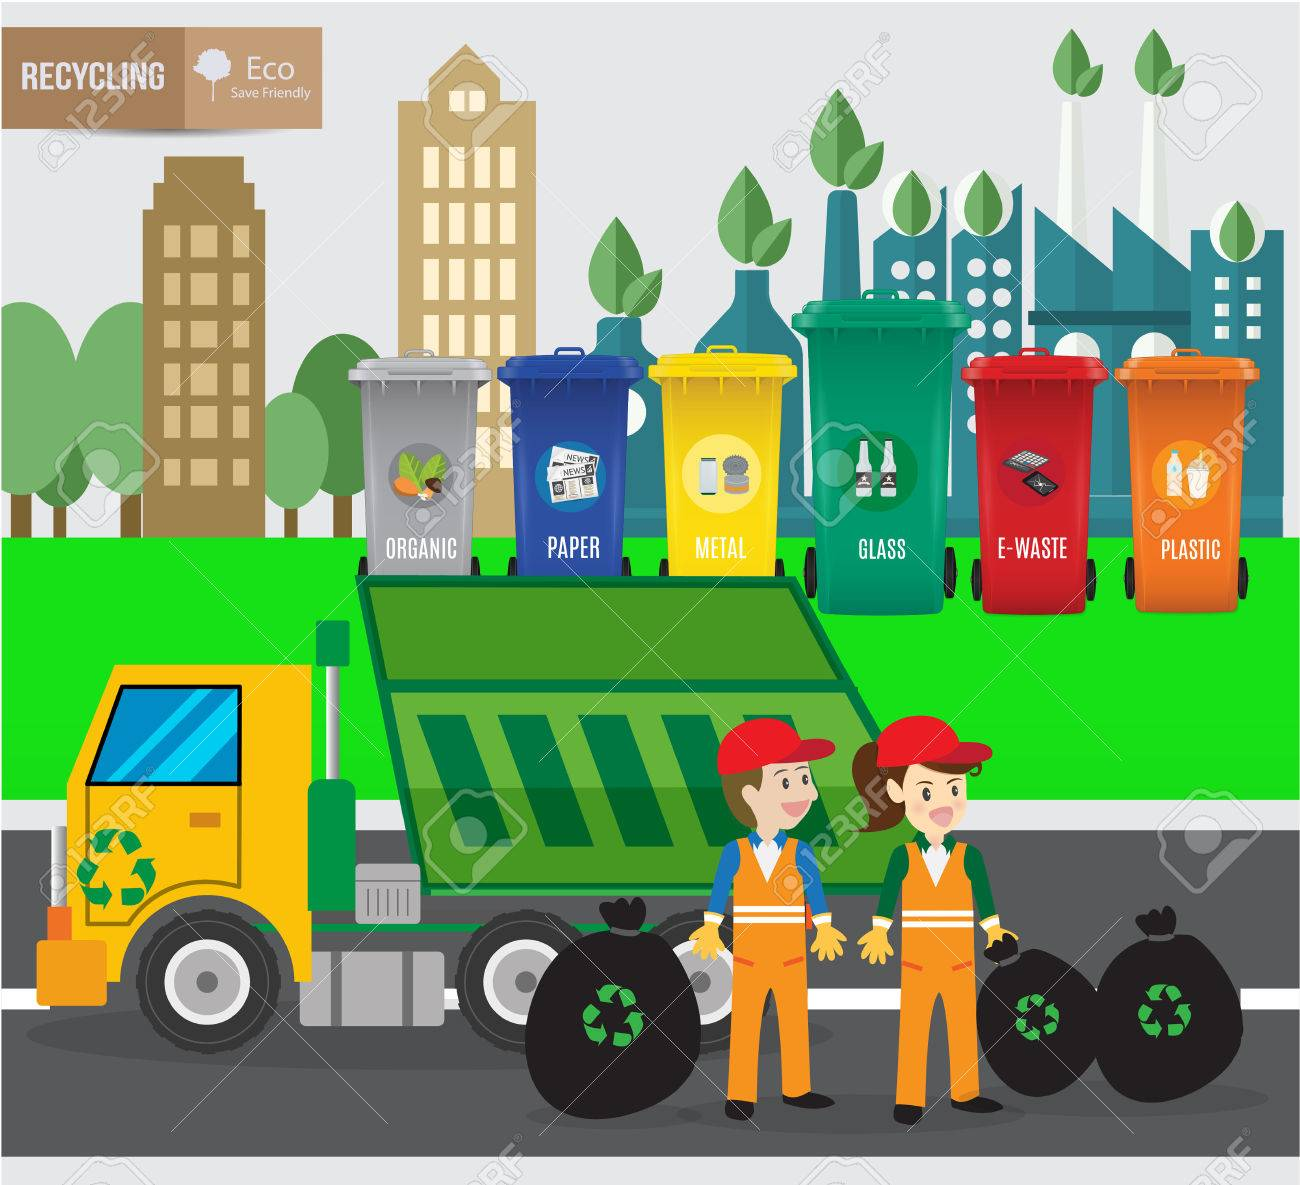 Waste recycing infographic and green ecology recycle.environmental friendly. Can be used for business layout, banner, diagram, statistic, web design, info chart, brochure template. vector illustration - 73639028